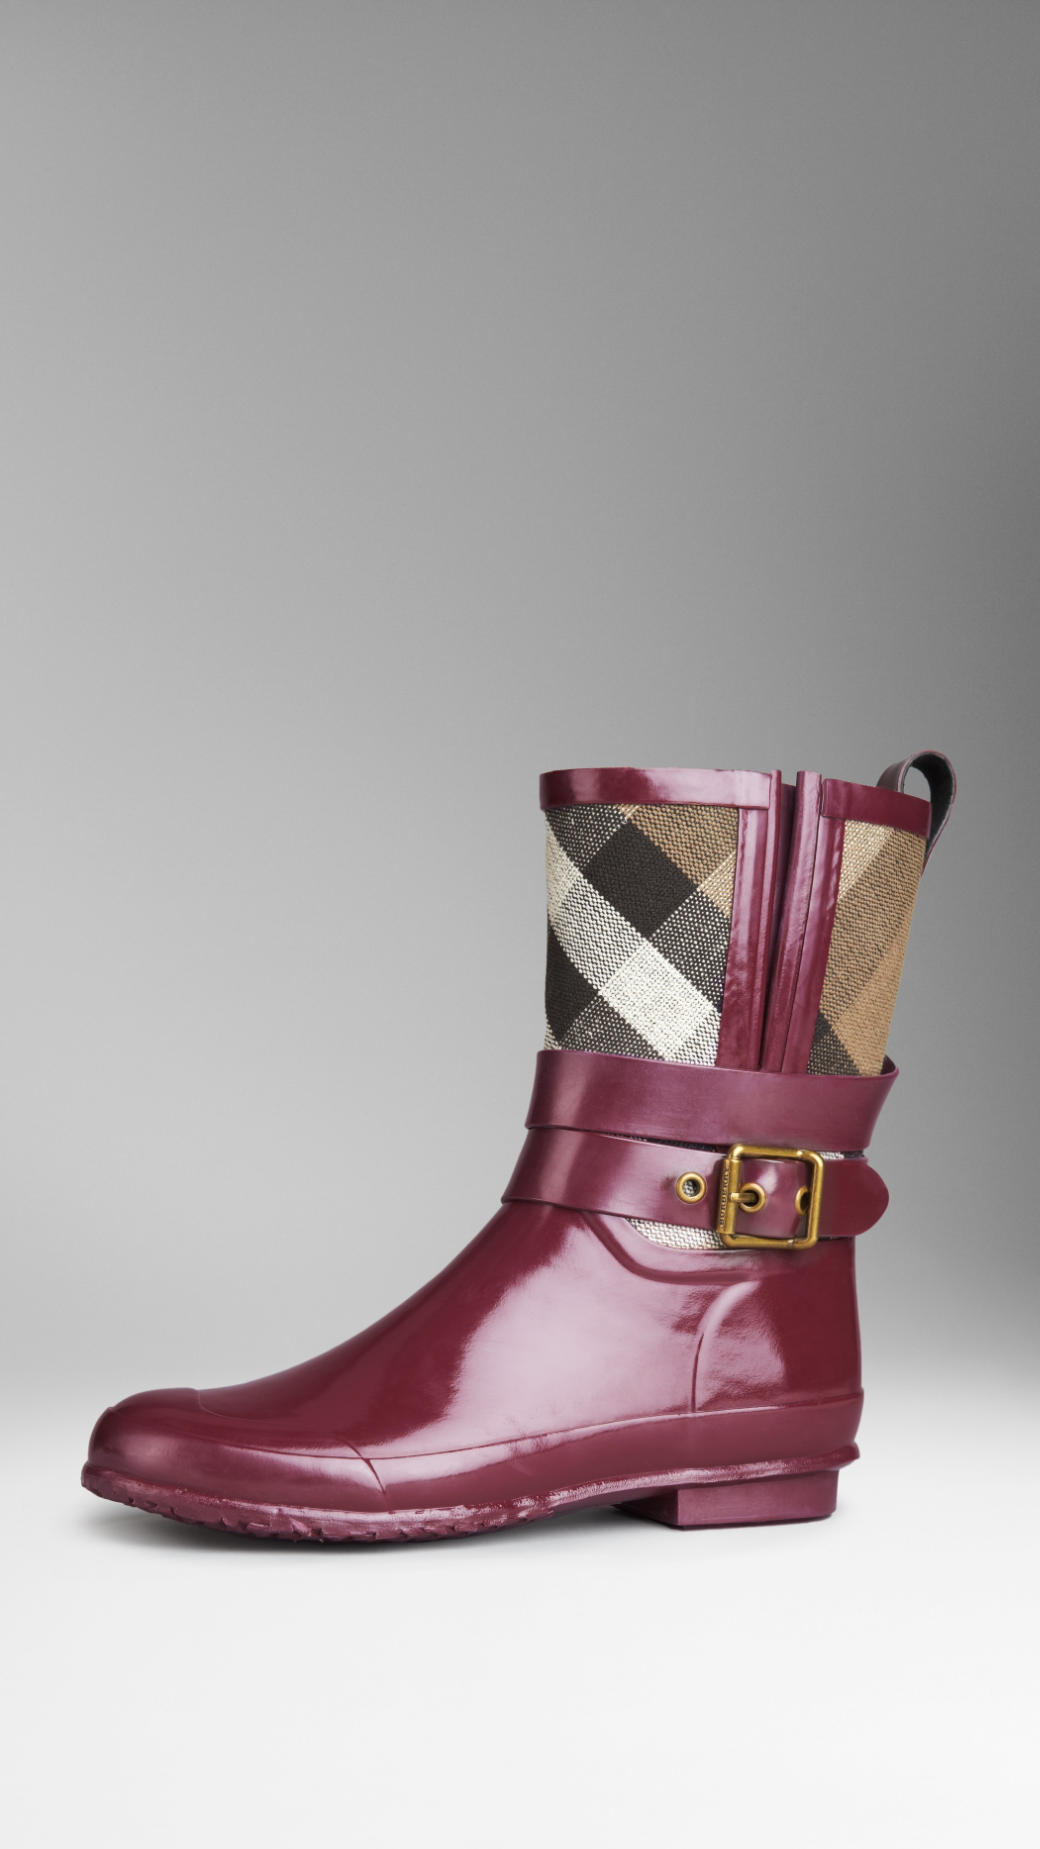 15d9d3db59a2 Burberry Boots Red